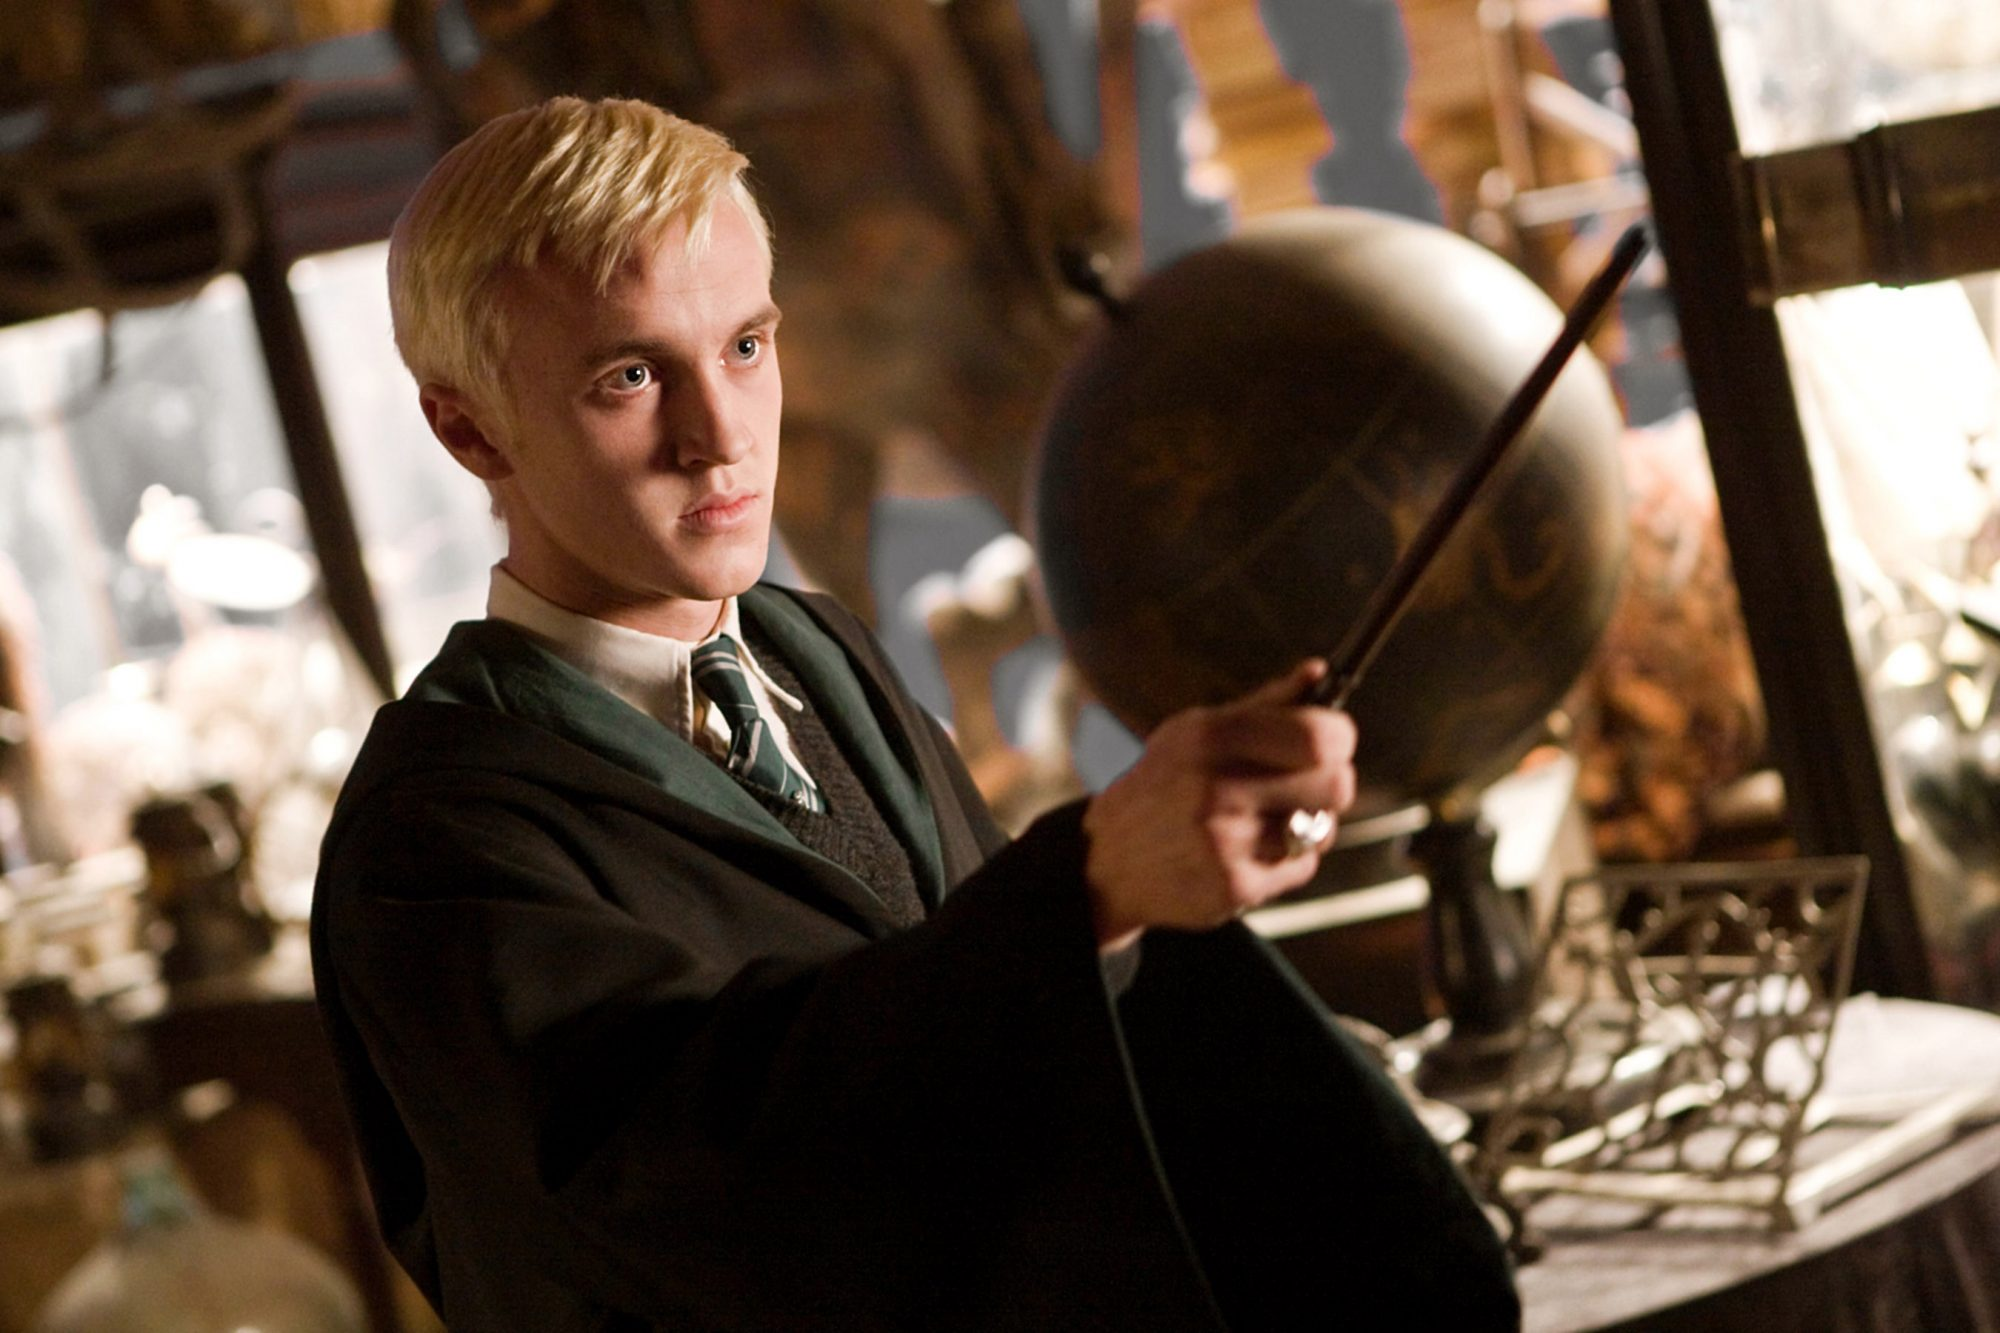 HARRY POTTER AND THE HALF-BLOOD PRINCE, Tom Felton, 2009. ©Warner Bros./courtesy Everett Collection